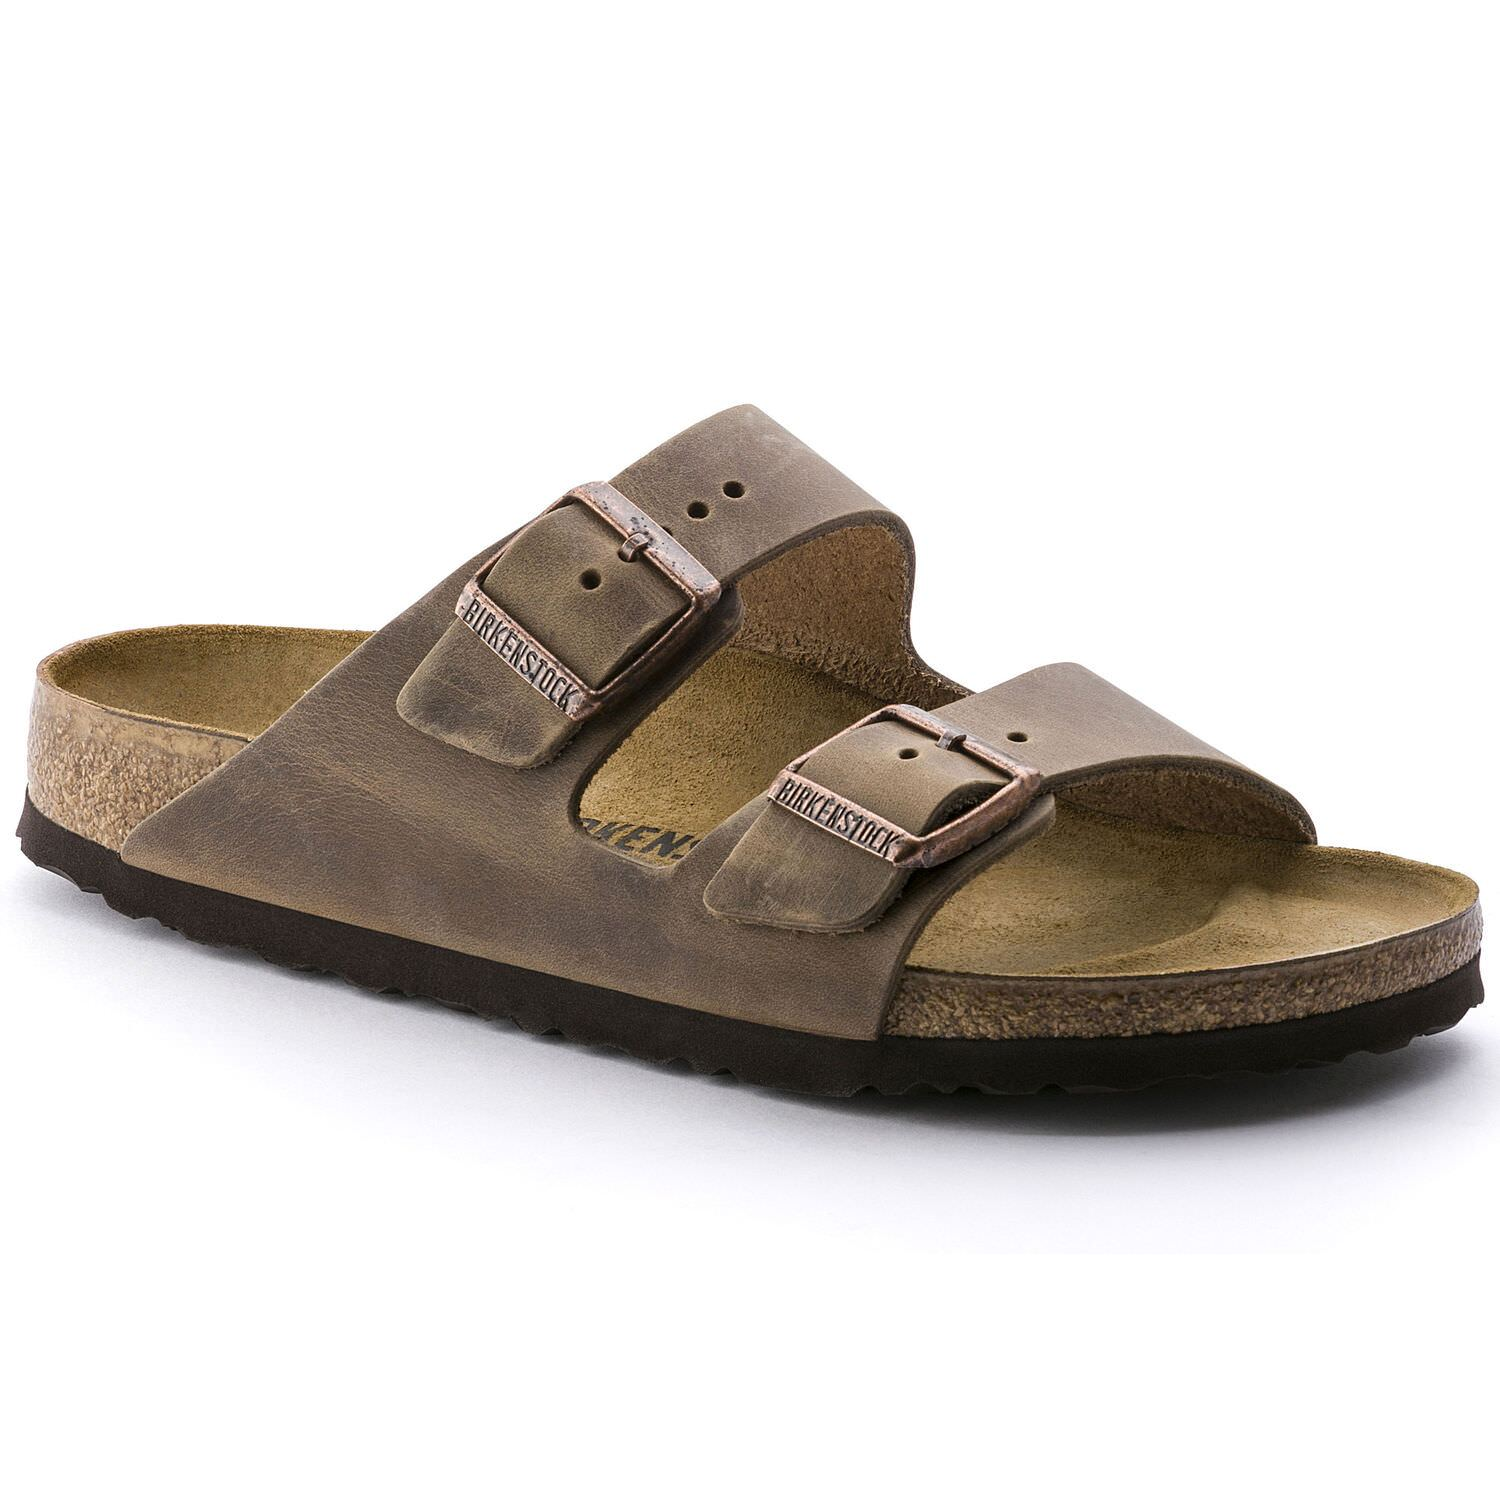 Birkenstock Classic, Arizona, Regular Fit, Natural Leather, Tobacco Brown Sandals Birkenstock Classic